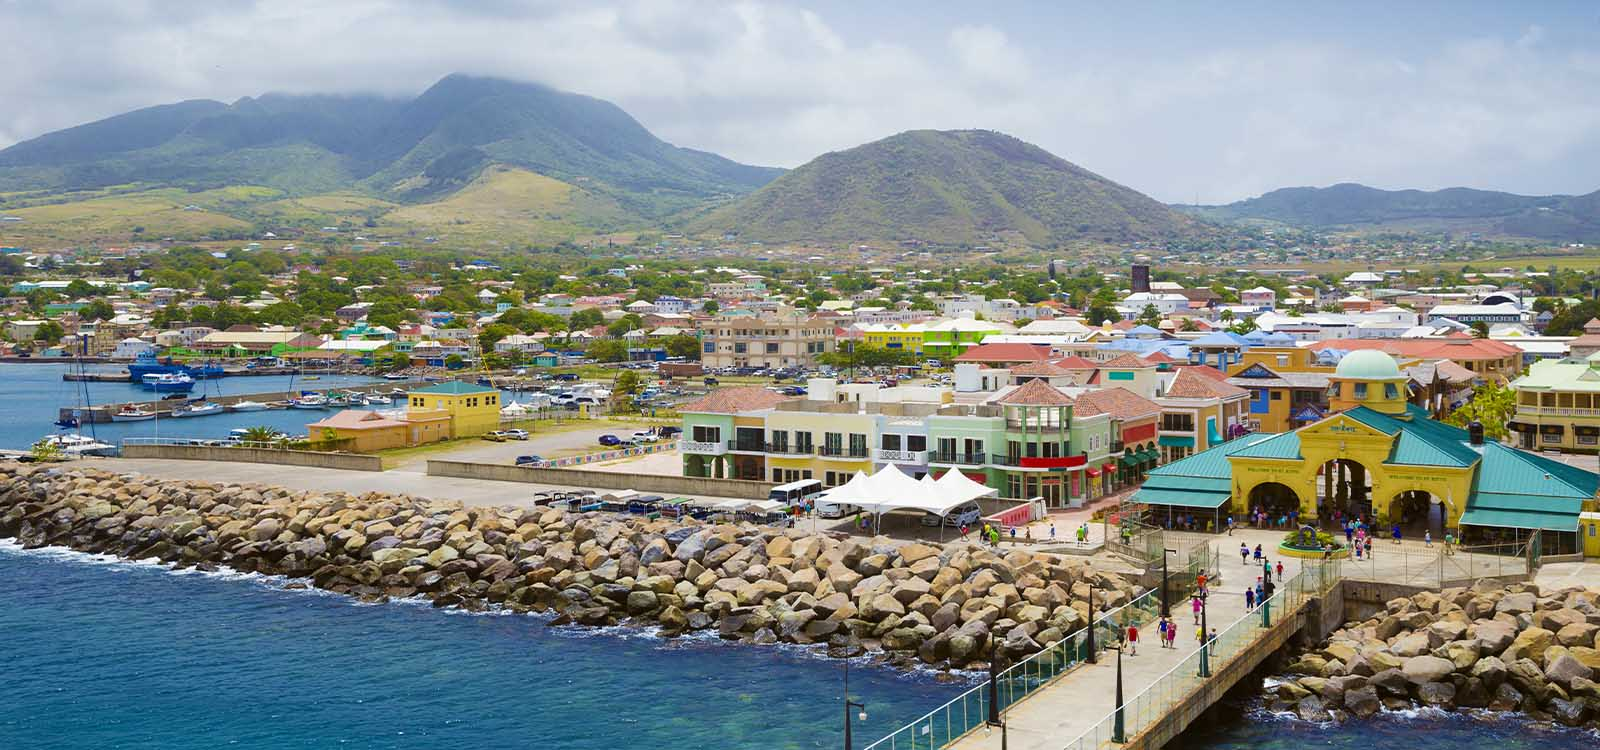 Aerial view of Basseterre, Capital of St Kitts & Nevis